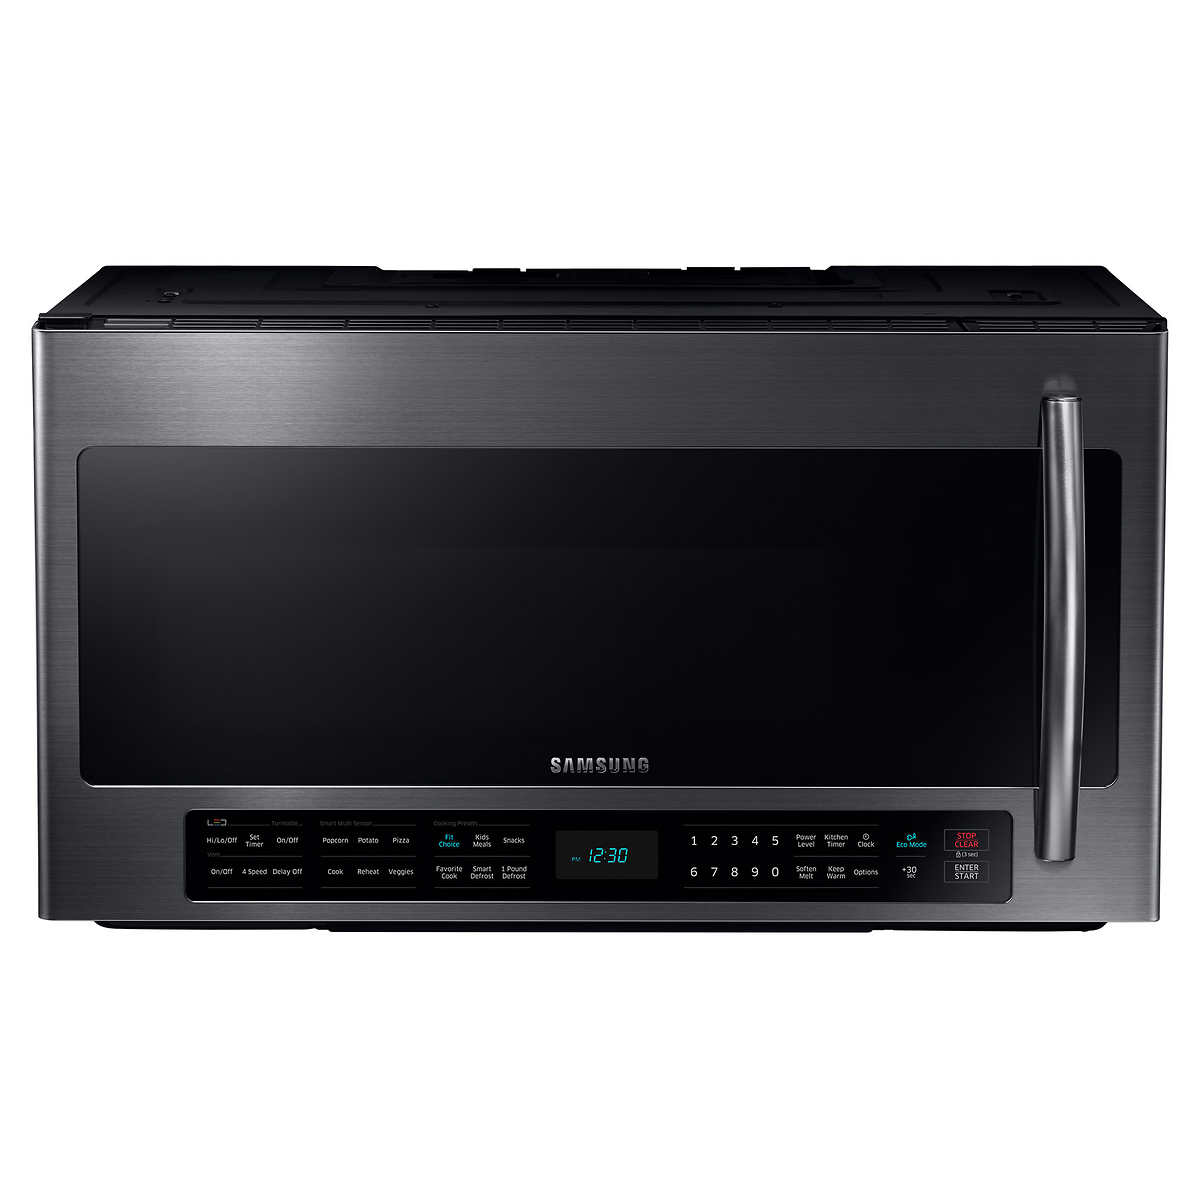 Home kitchen appliances microwaves over the range microwaves - Out Of Stock Samsung 2 1cuft Over The Range Microwave With Multi Sensor Cooking In Black